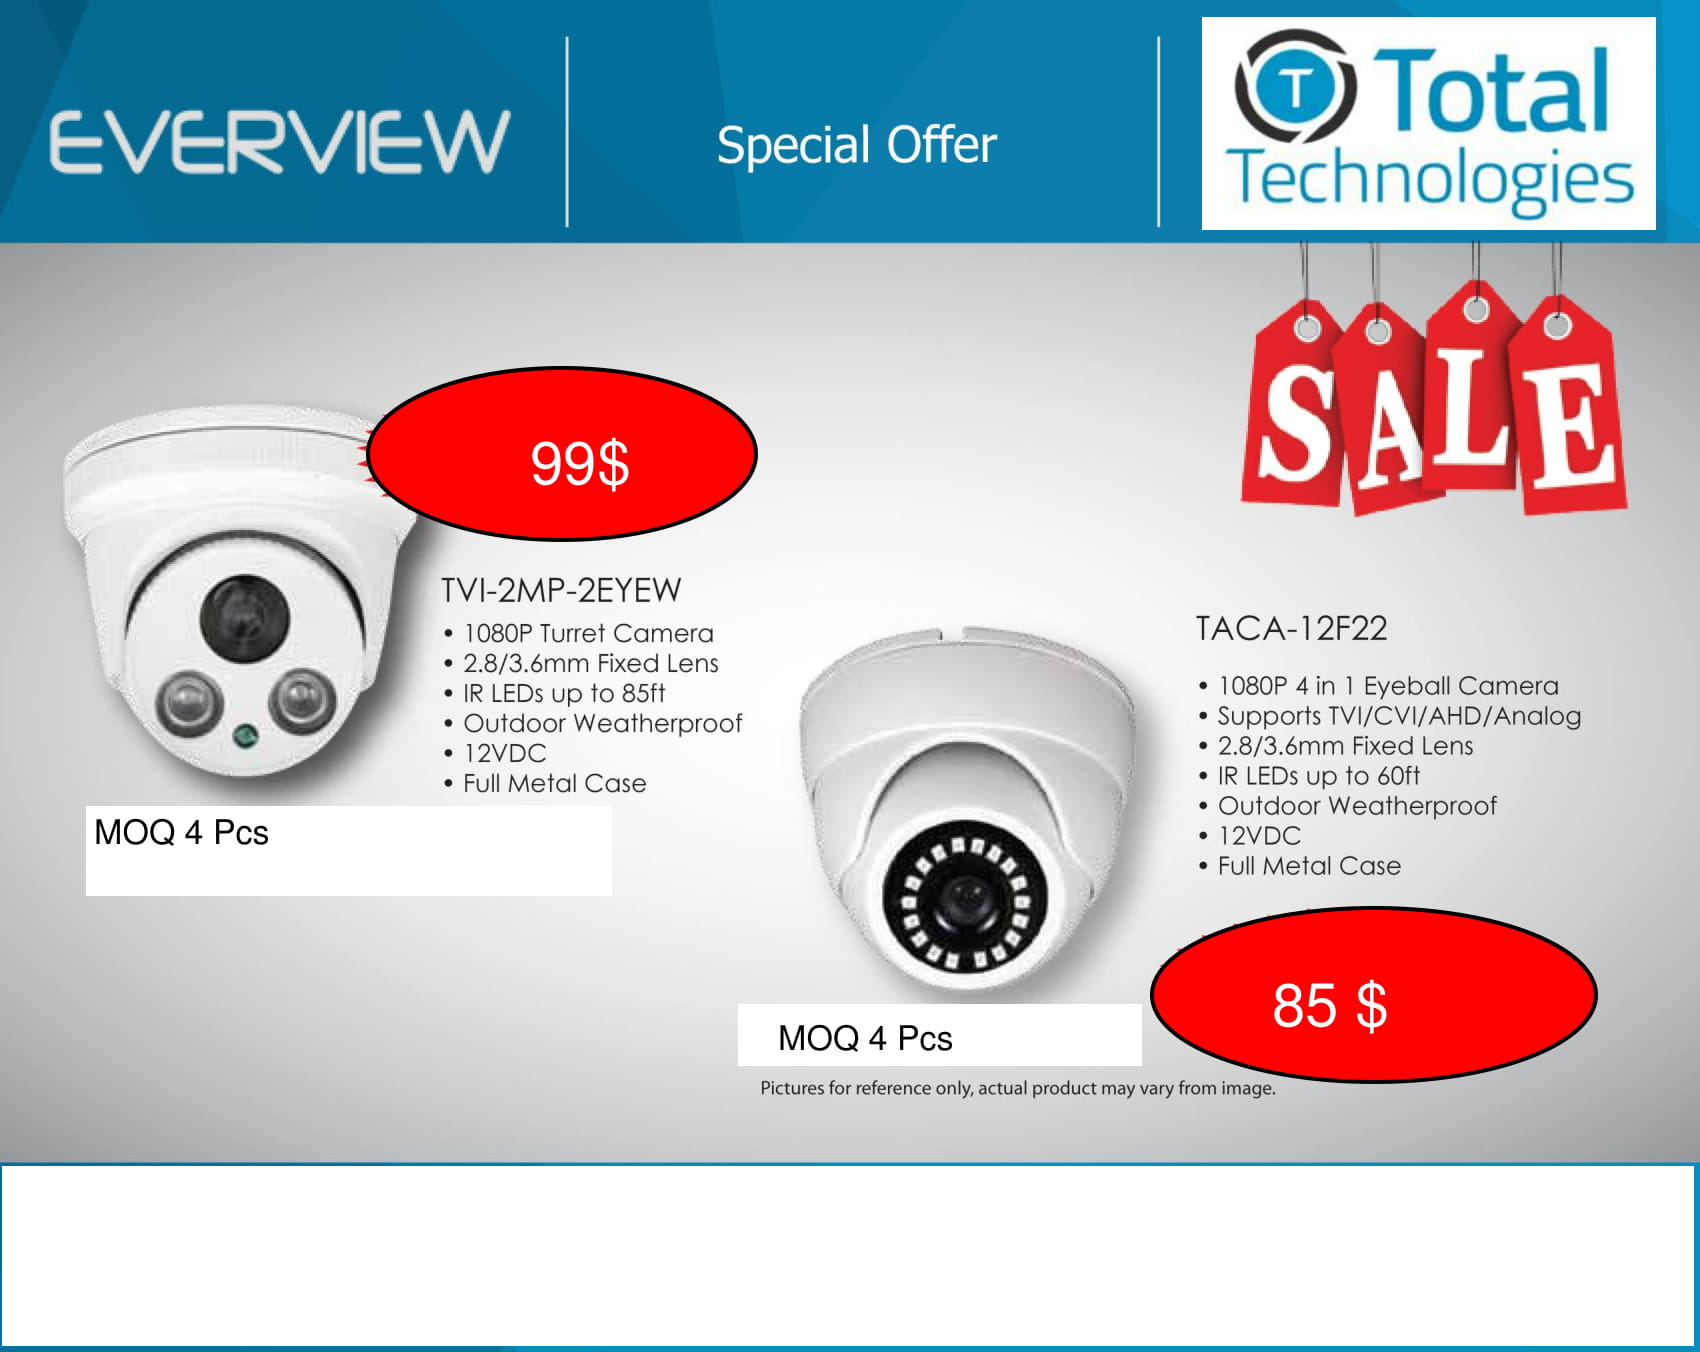 HD Camera Packages Full Promotion Price – Compare & Shop – Call For Password 888-841-8659